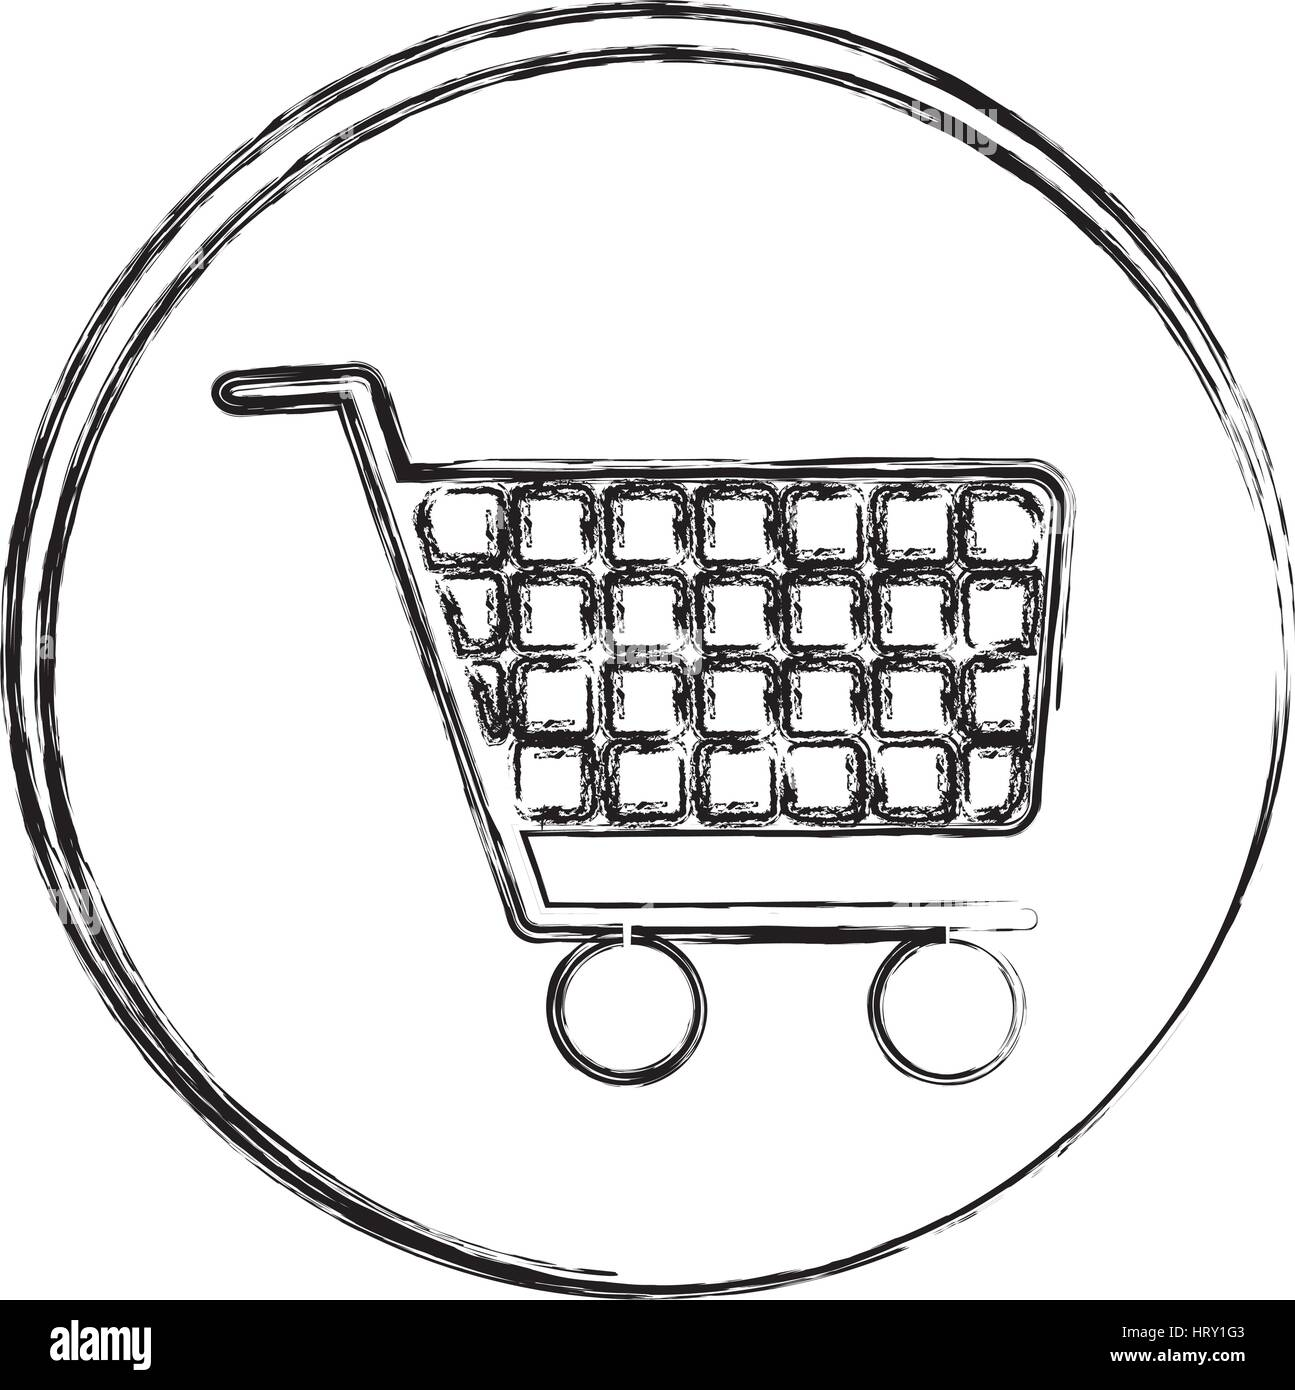 blurred silhouette circular frame with shopping cart icon - Stock Image